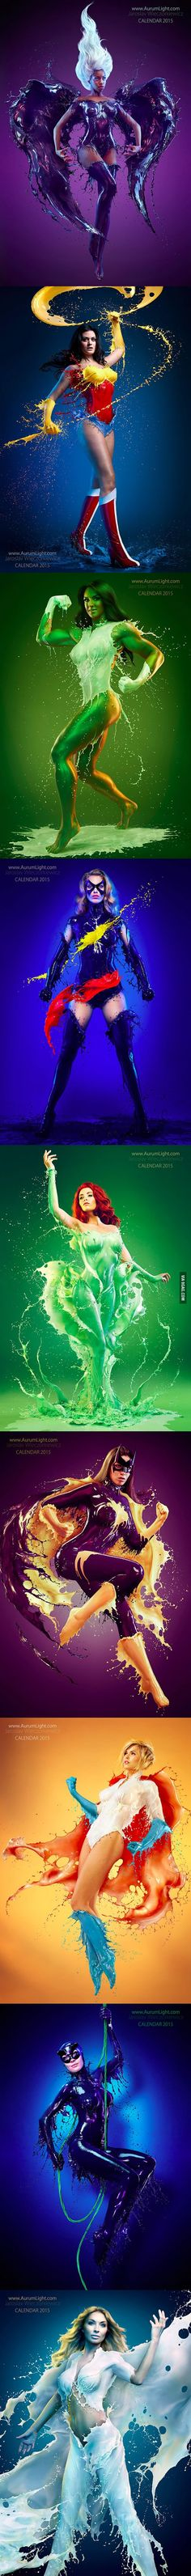 Superheroines with liquid versions of their suits - but how?